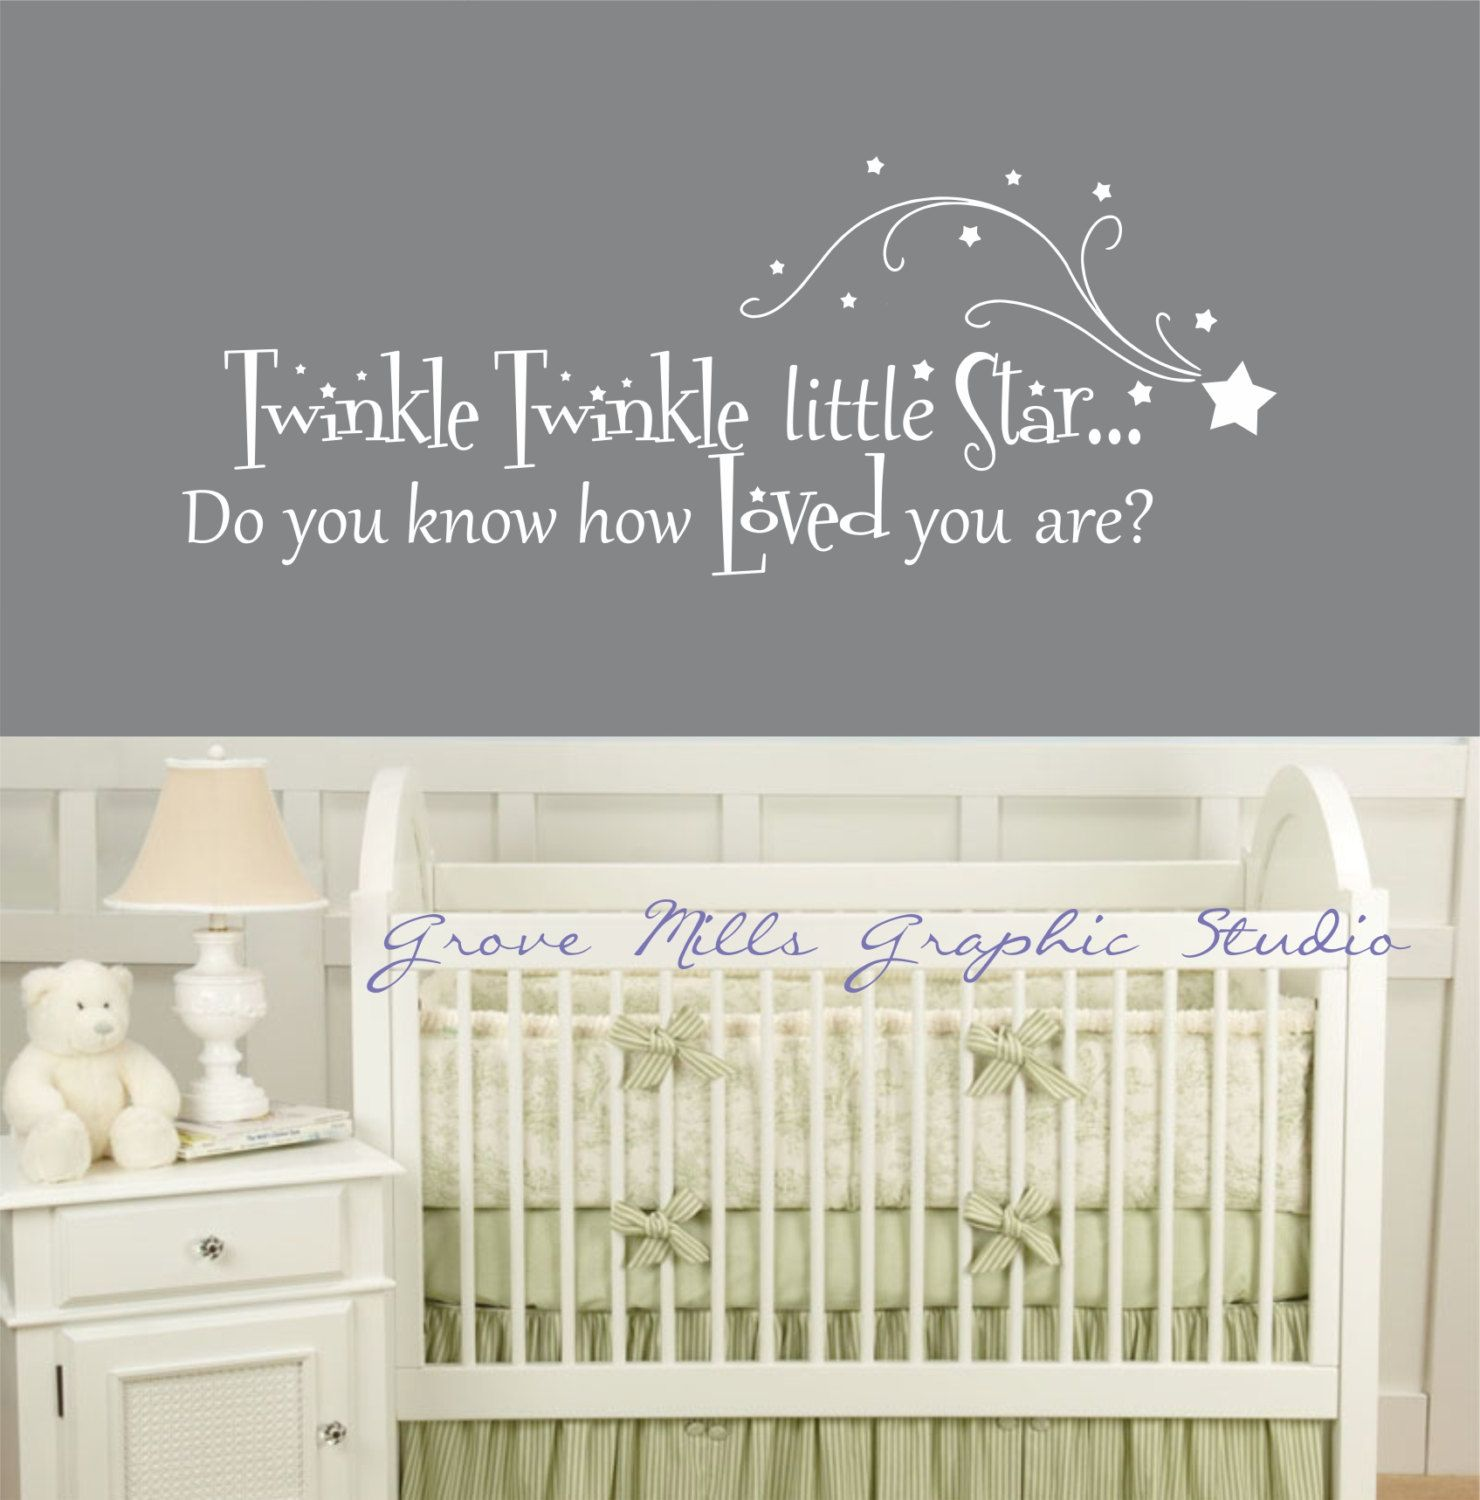 Elegant Twinkle Twinkle Little Star Wall Decal   Nursery Wall Decal   Baby Room  Decal. $30.00